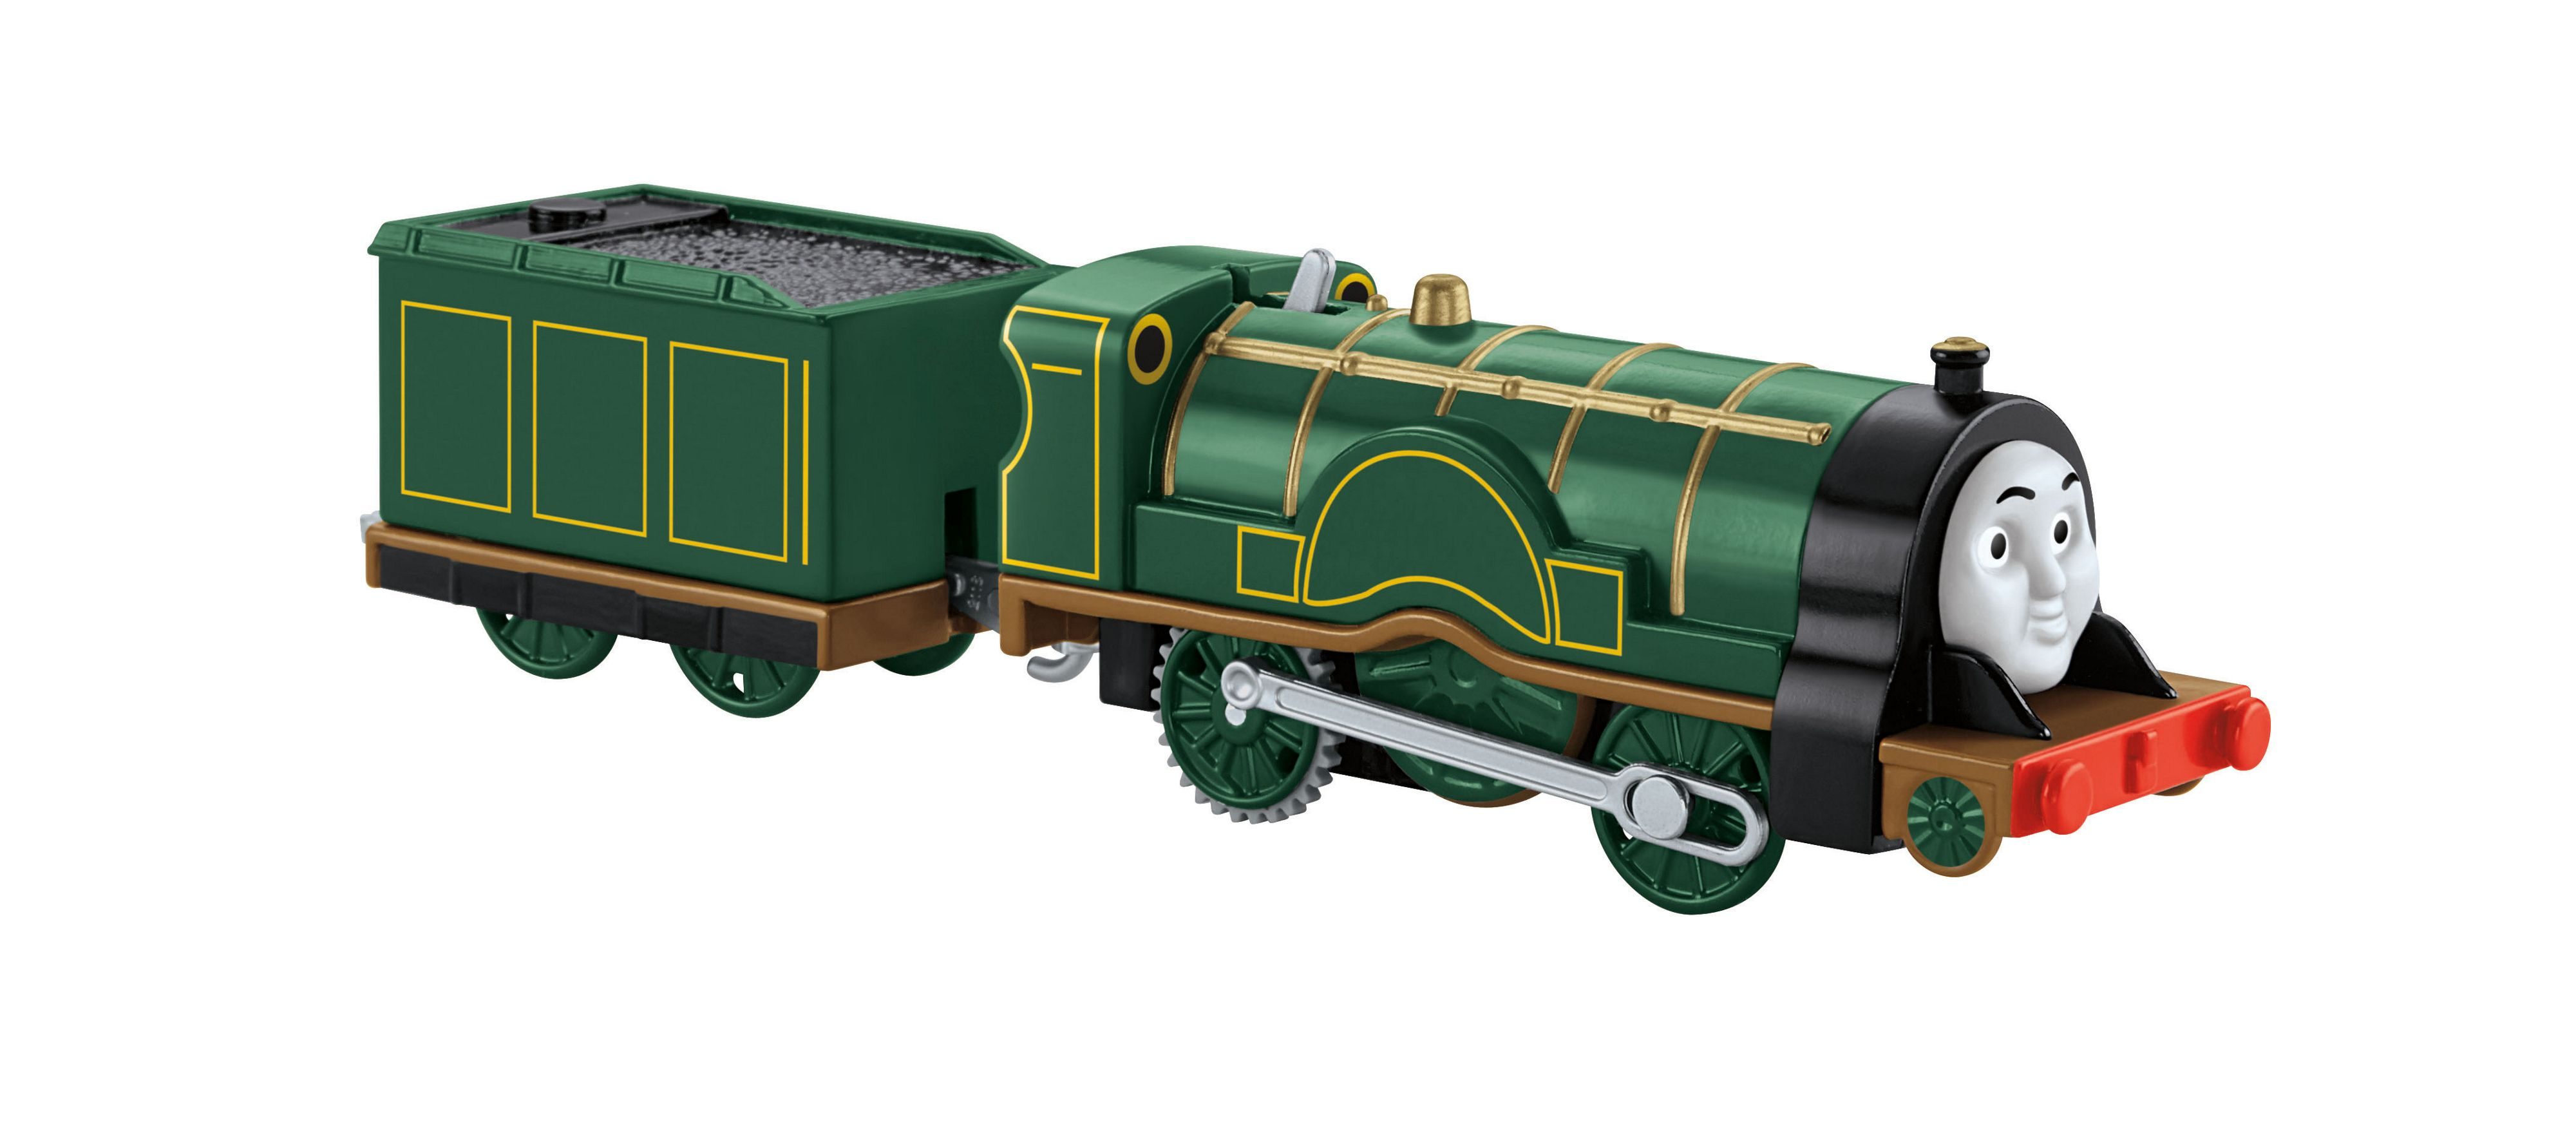 Engine shop for cheap products and save online for Thomas friends trackmaster motorized railway